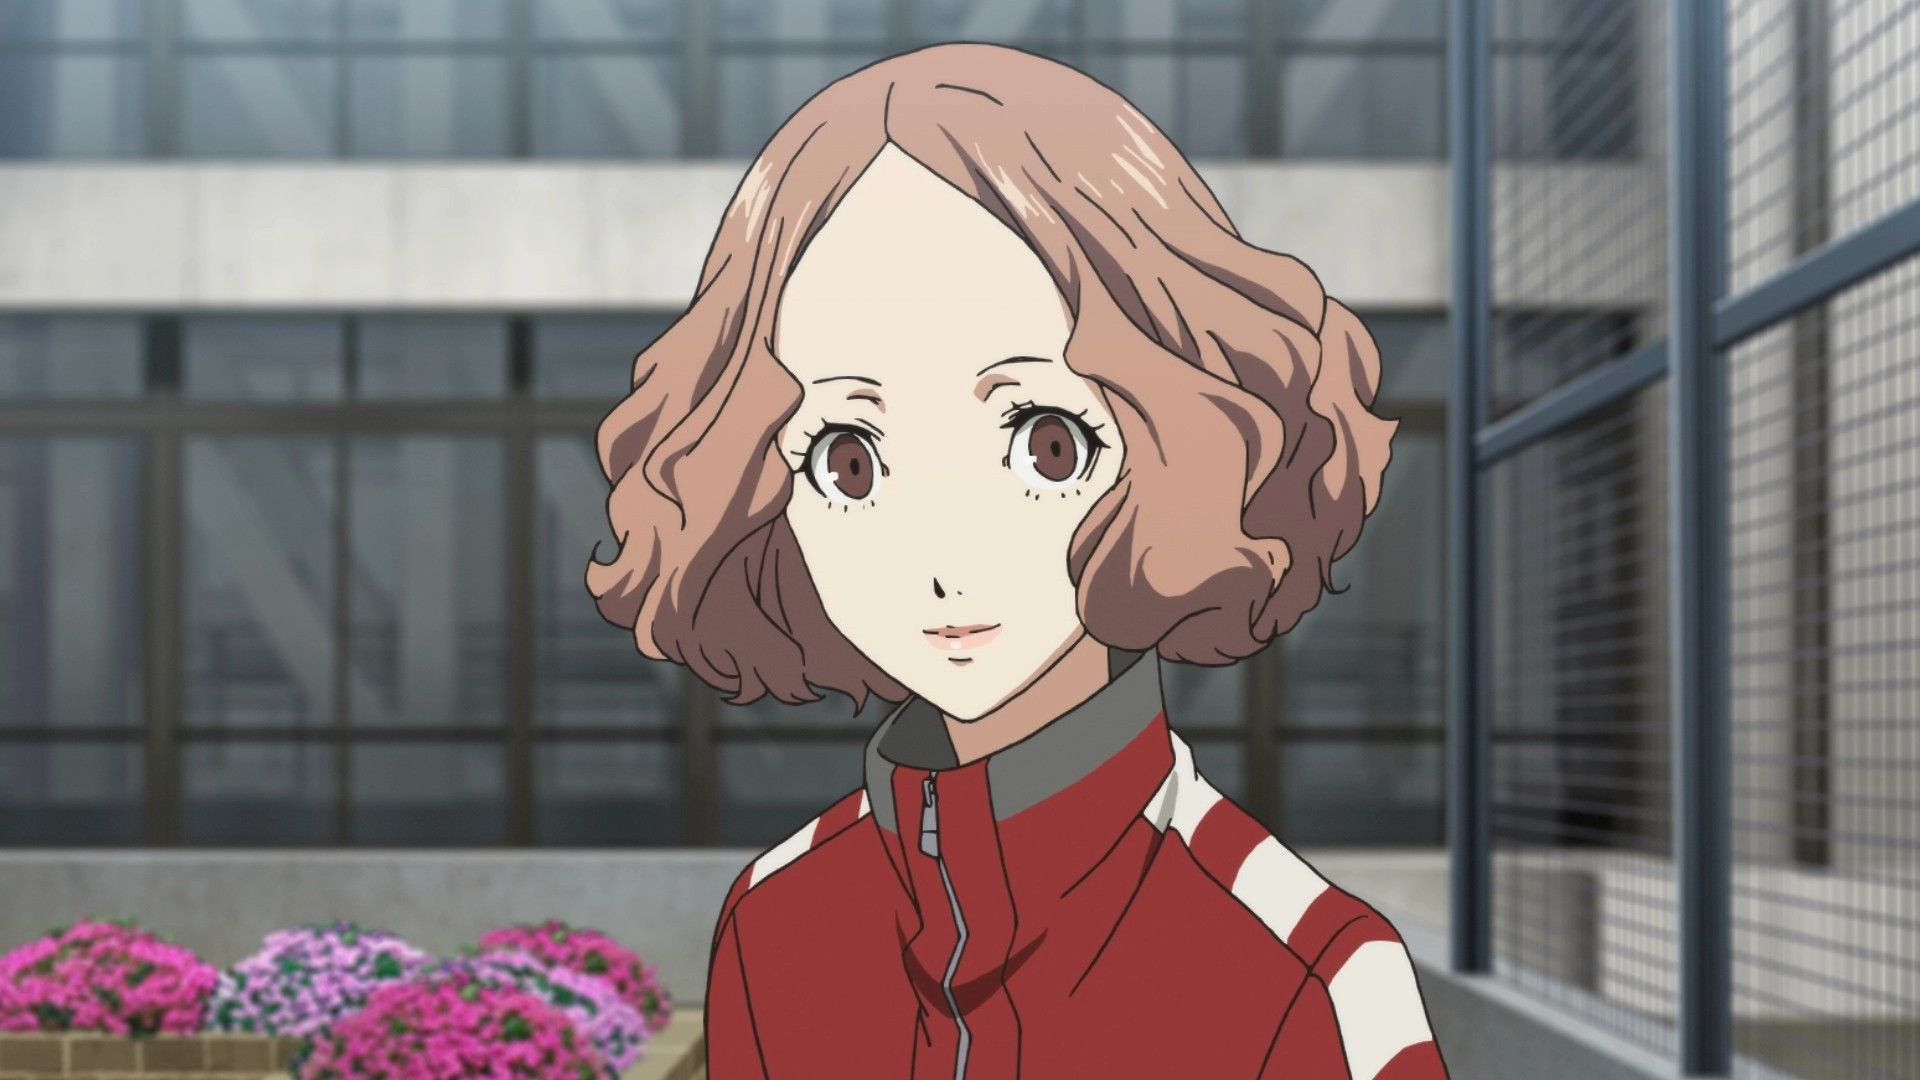 Haru With Her Roof Garden With Images Persona 5